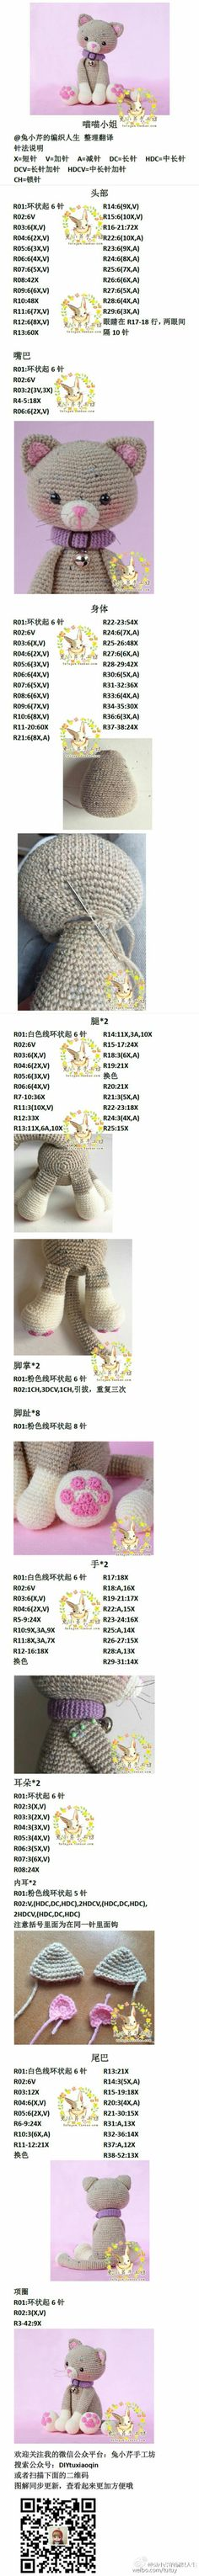 Discover thousands of images about Amigurumi crochet doll pattern Harriet the Pegasus PATTERN Crochet Diy, Chat Crochet, Crochet Mignon, Crochet Amigurumi, Crochet Doll Pattern, Crochet Chart, Love Crochet, Crochet For Kids, Amigurumi Patterns